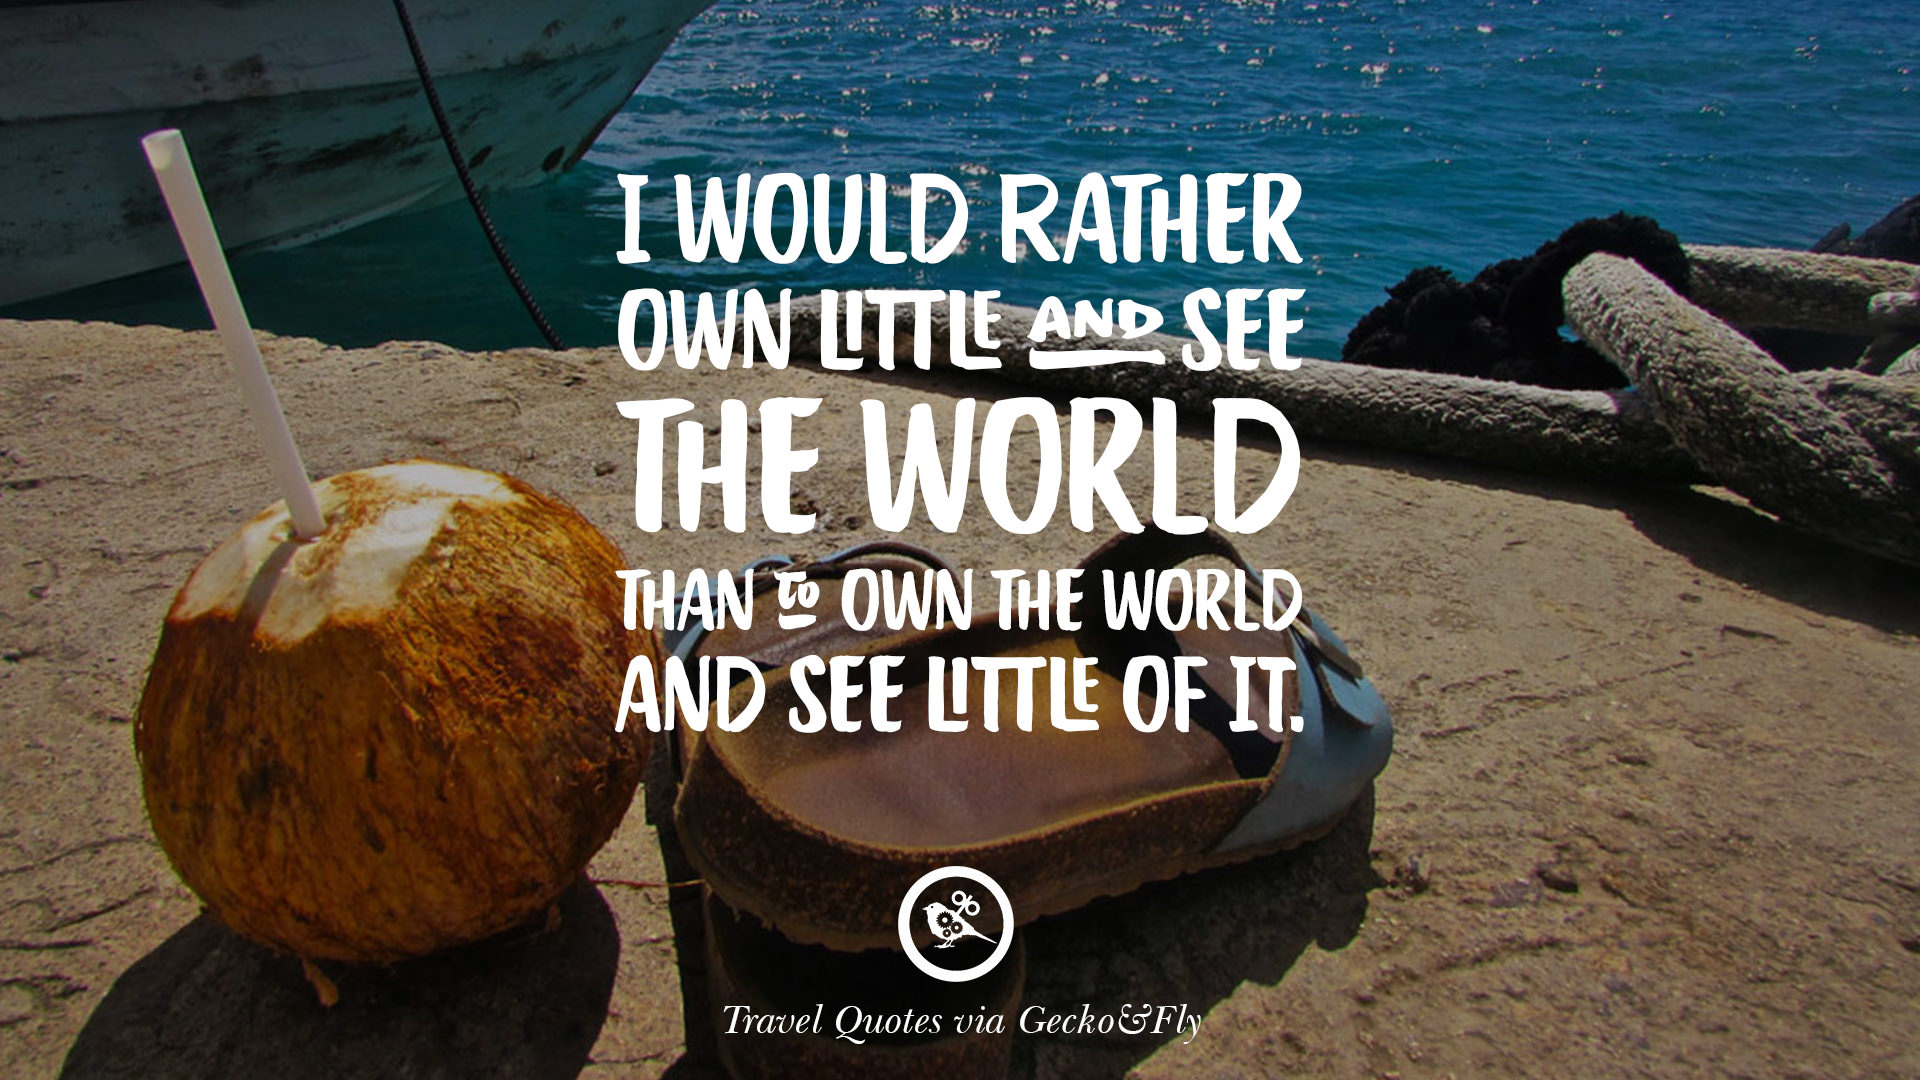 60 Best Adventure Quotes And Sayings: 20 Adventurous Quotes On Traveling And Exploring The World